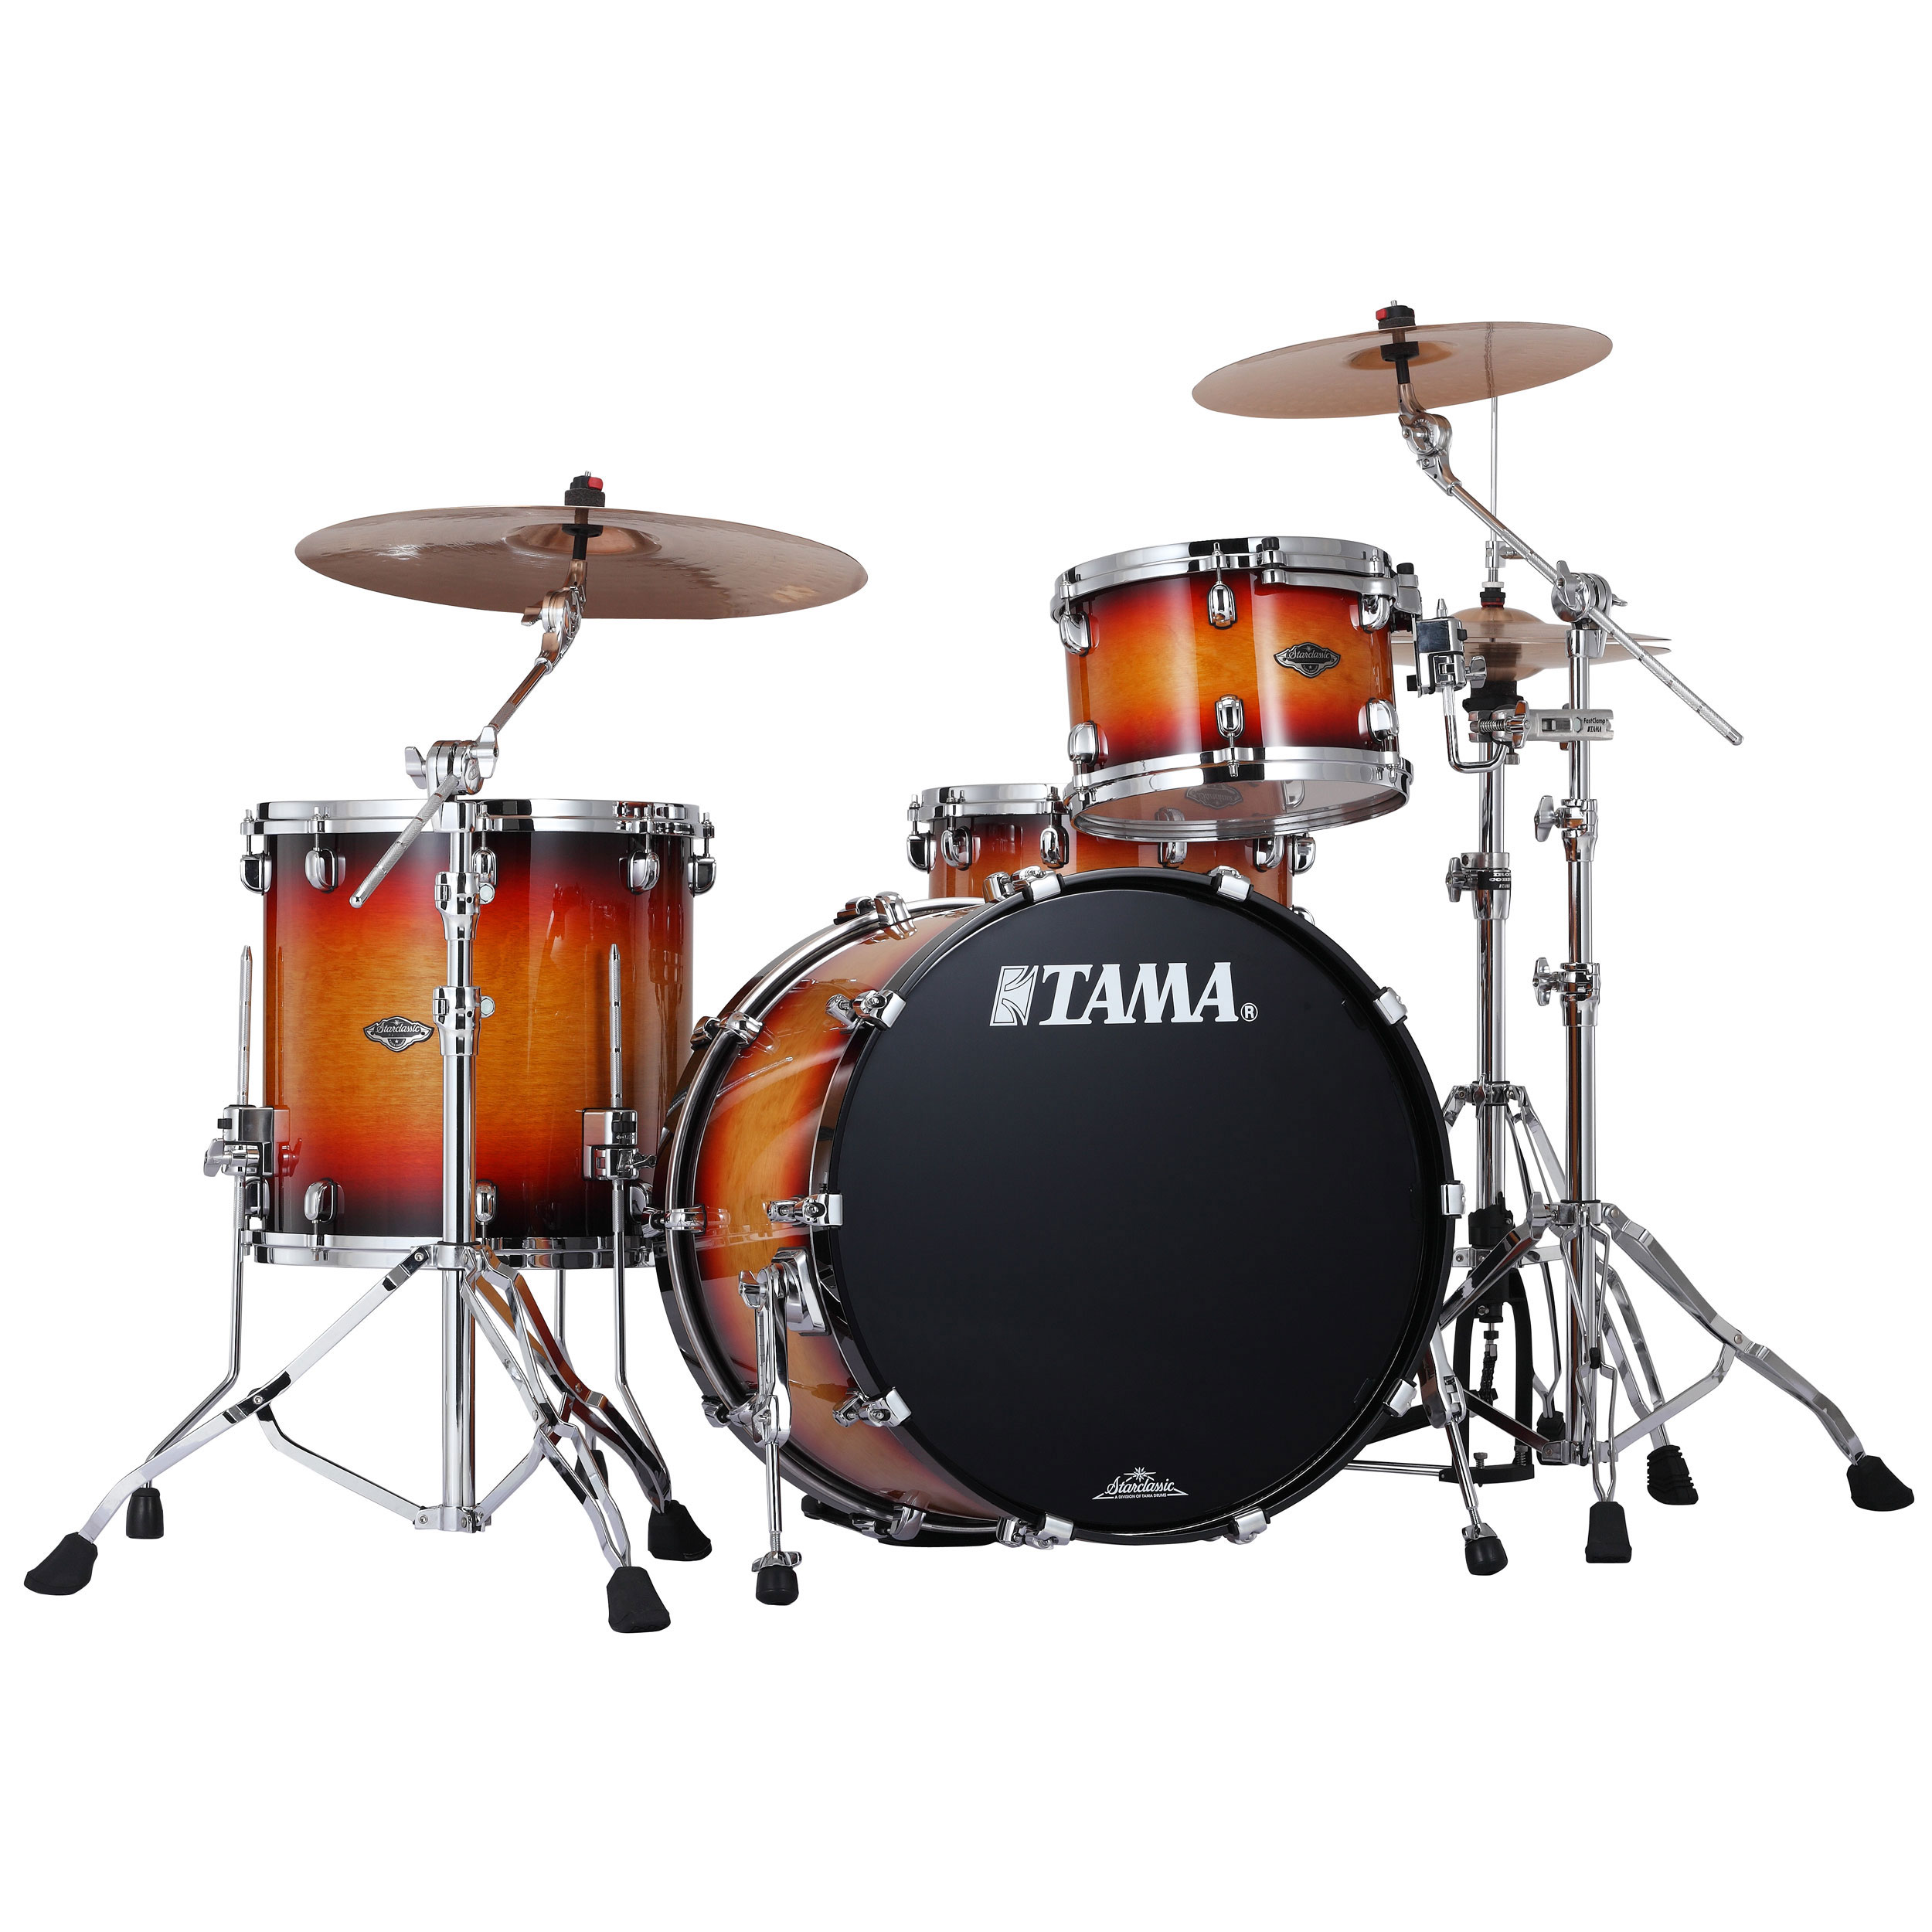 "Tama Starclassic Performer B/B 3-Piece Drum Set Shell Pack (22"" Bass, 12/16"" Toms) in Transparent/Solid Finish"